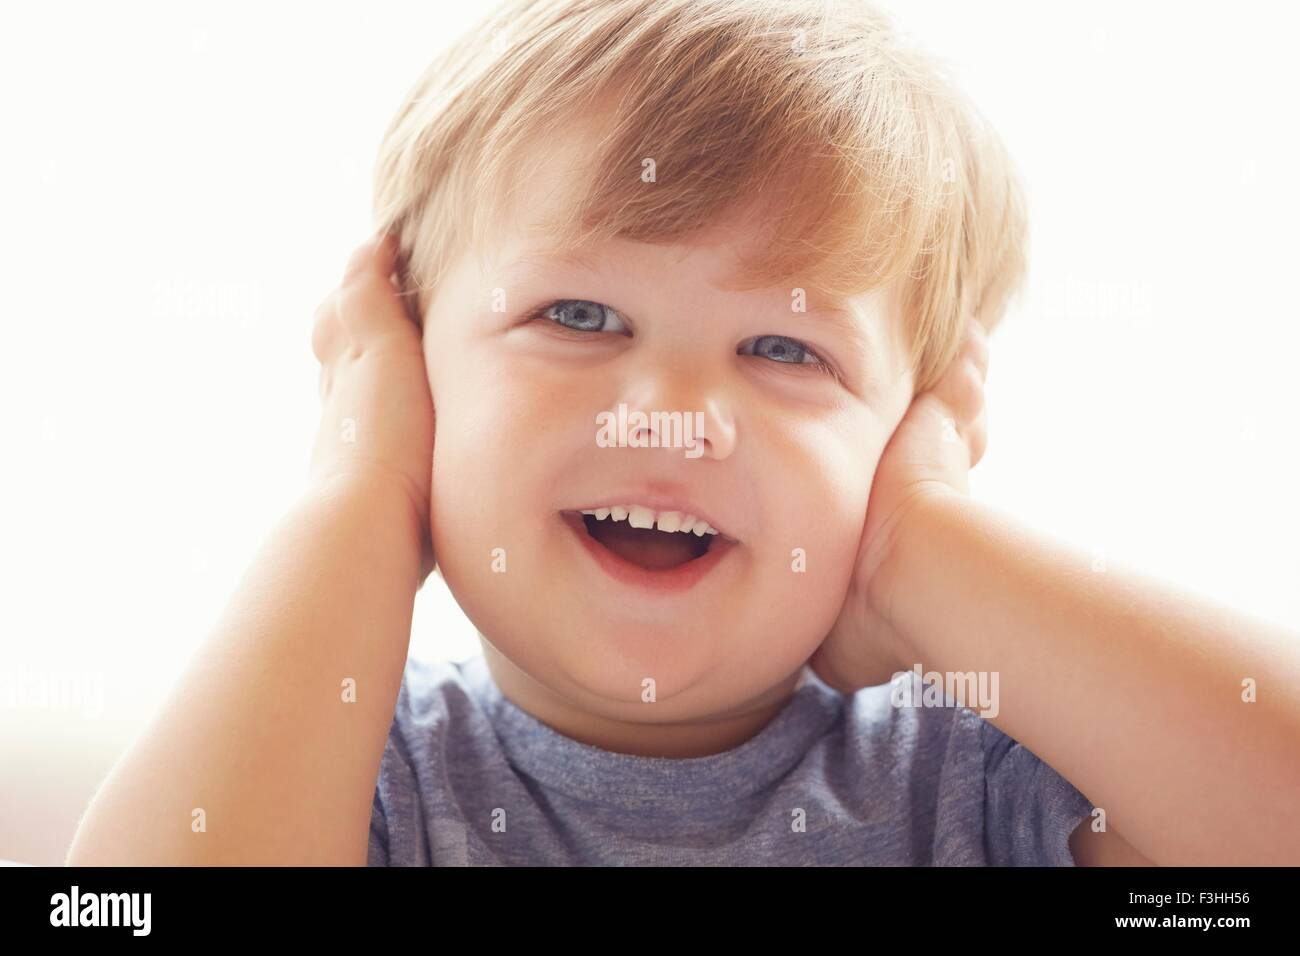 Portrait of young boy covering ears with hands, looking away smiling - Stock Image